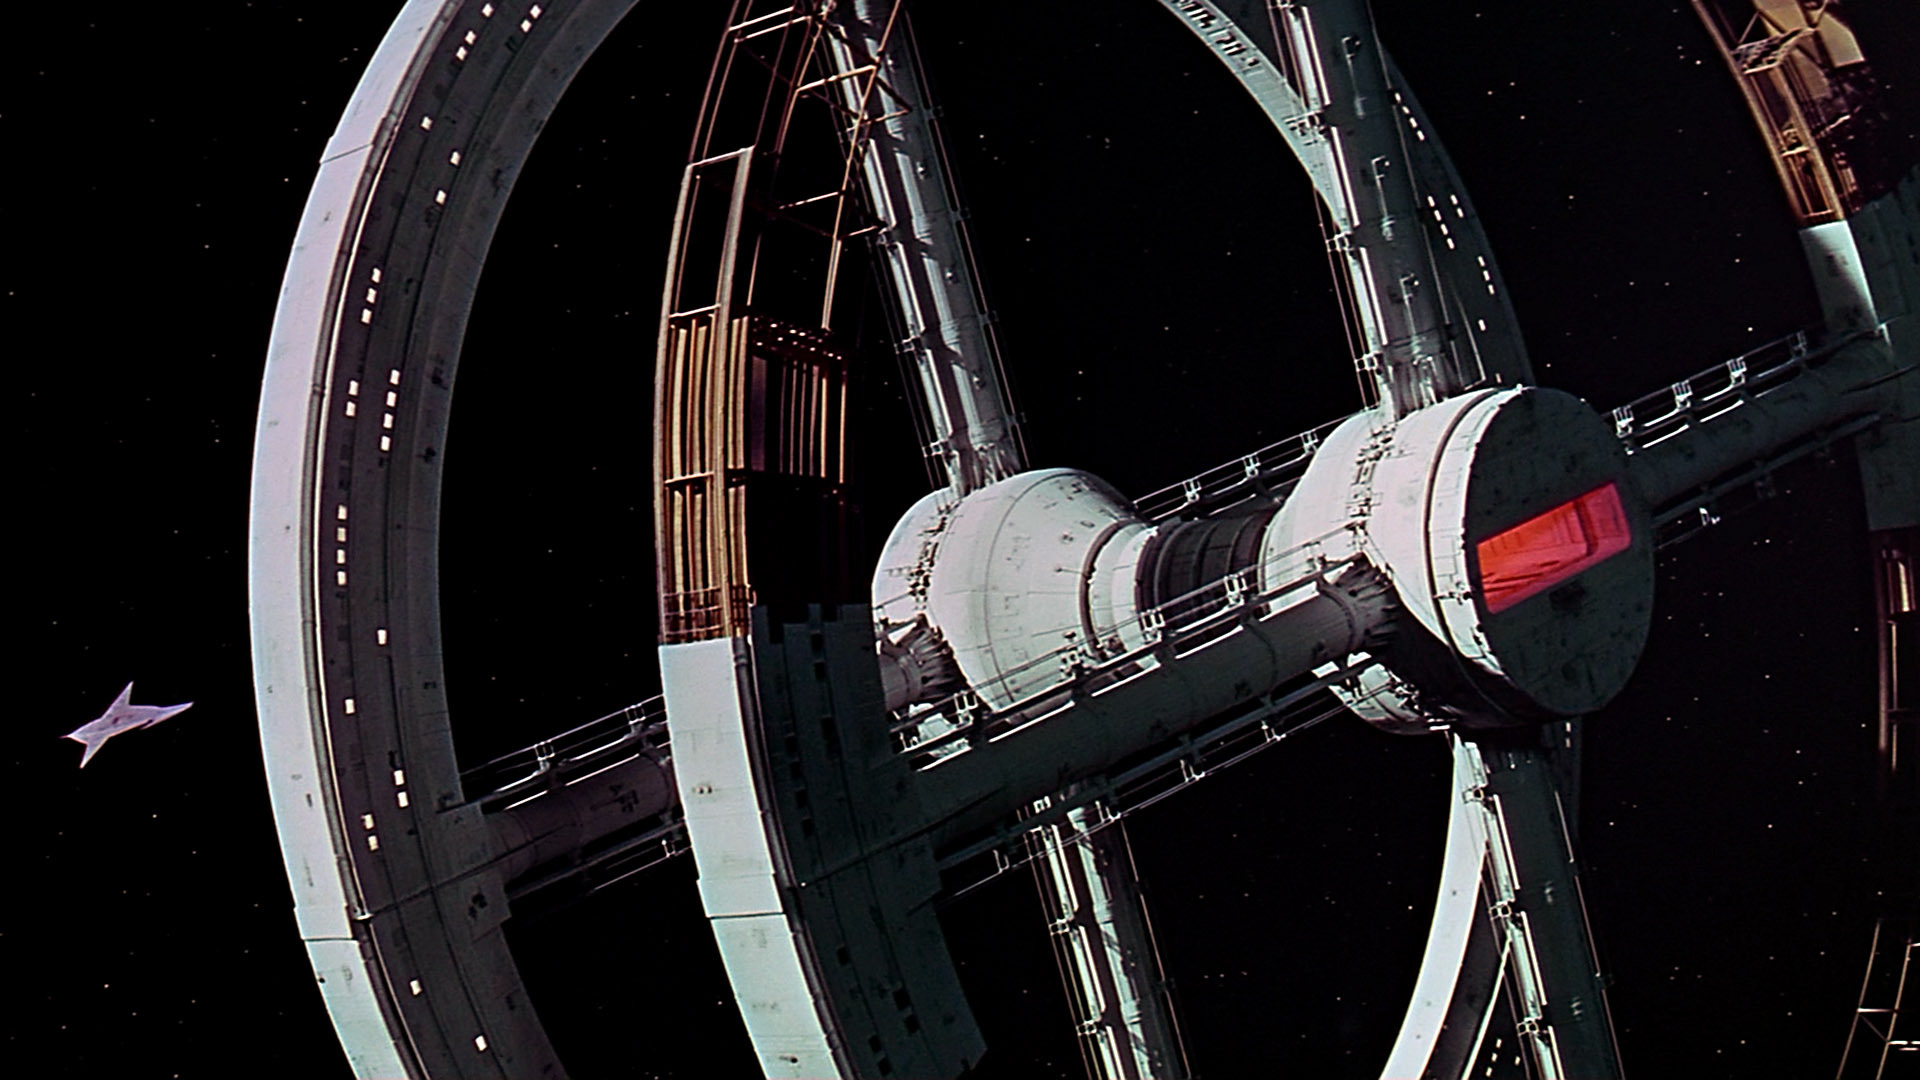 2001 a space odyssey hd wallpaper background image - 2001 a space odyssey wallpaper ...